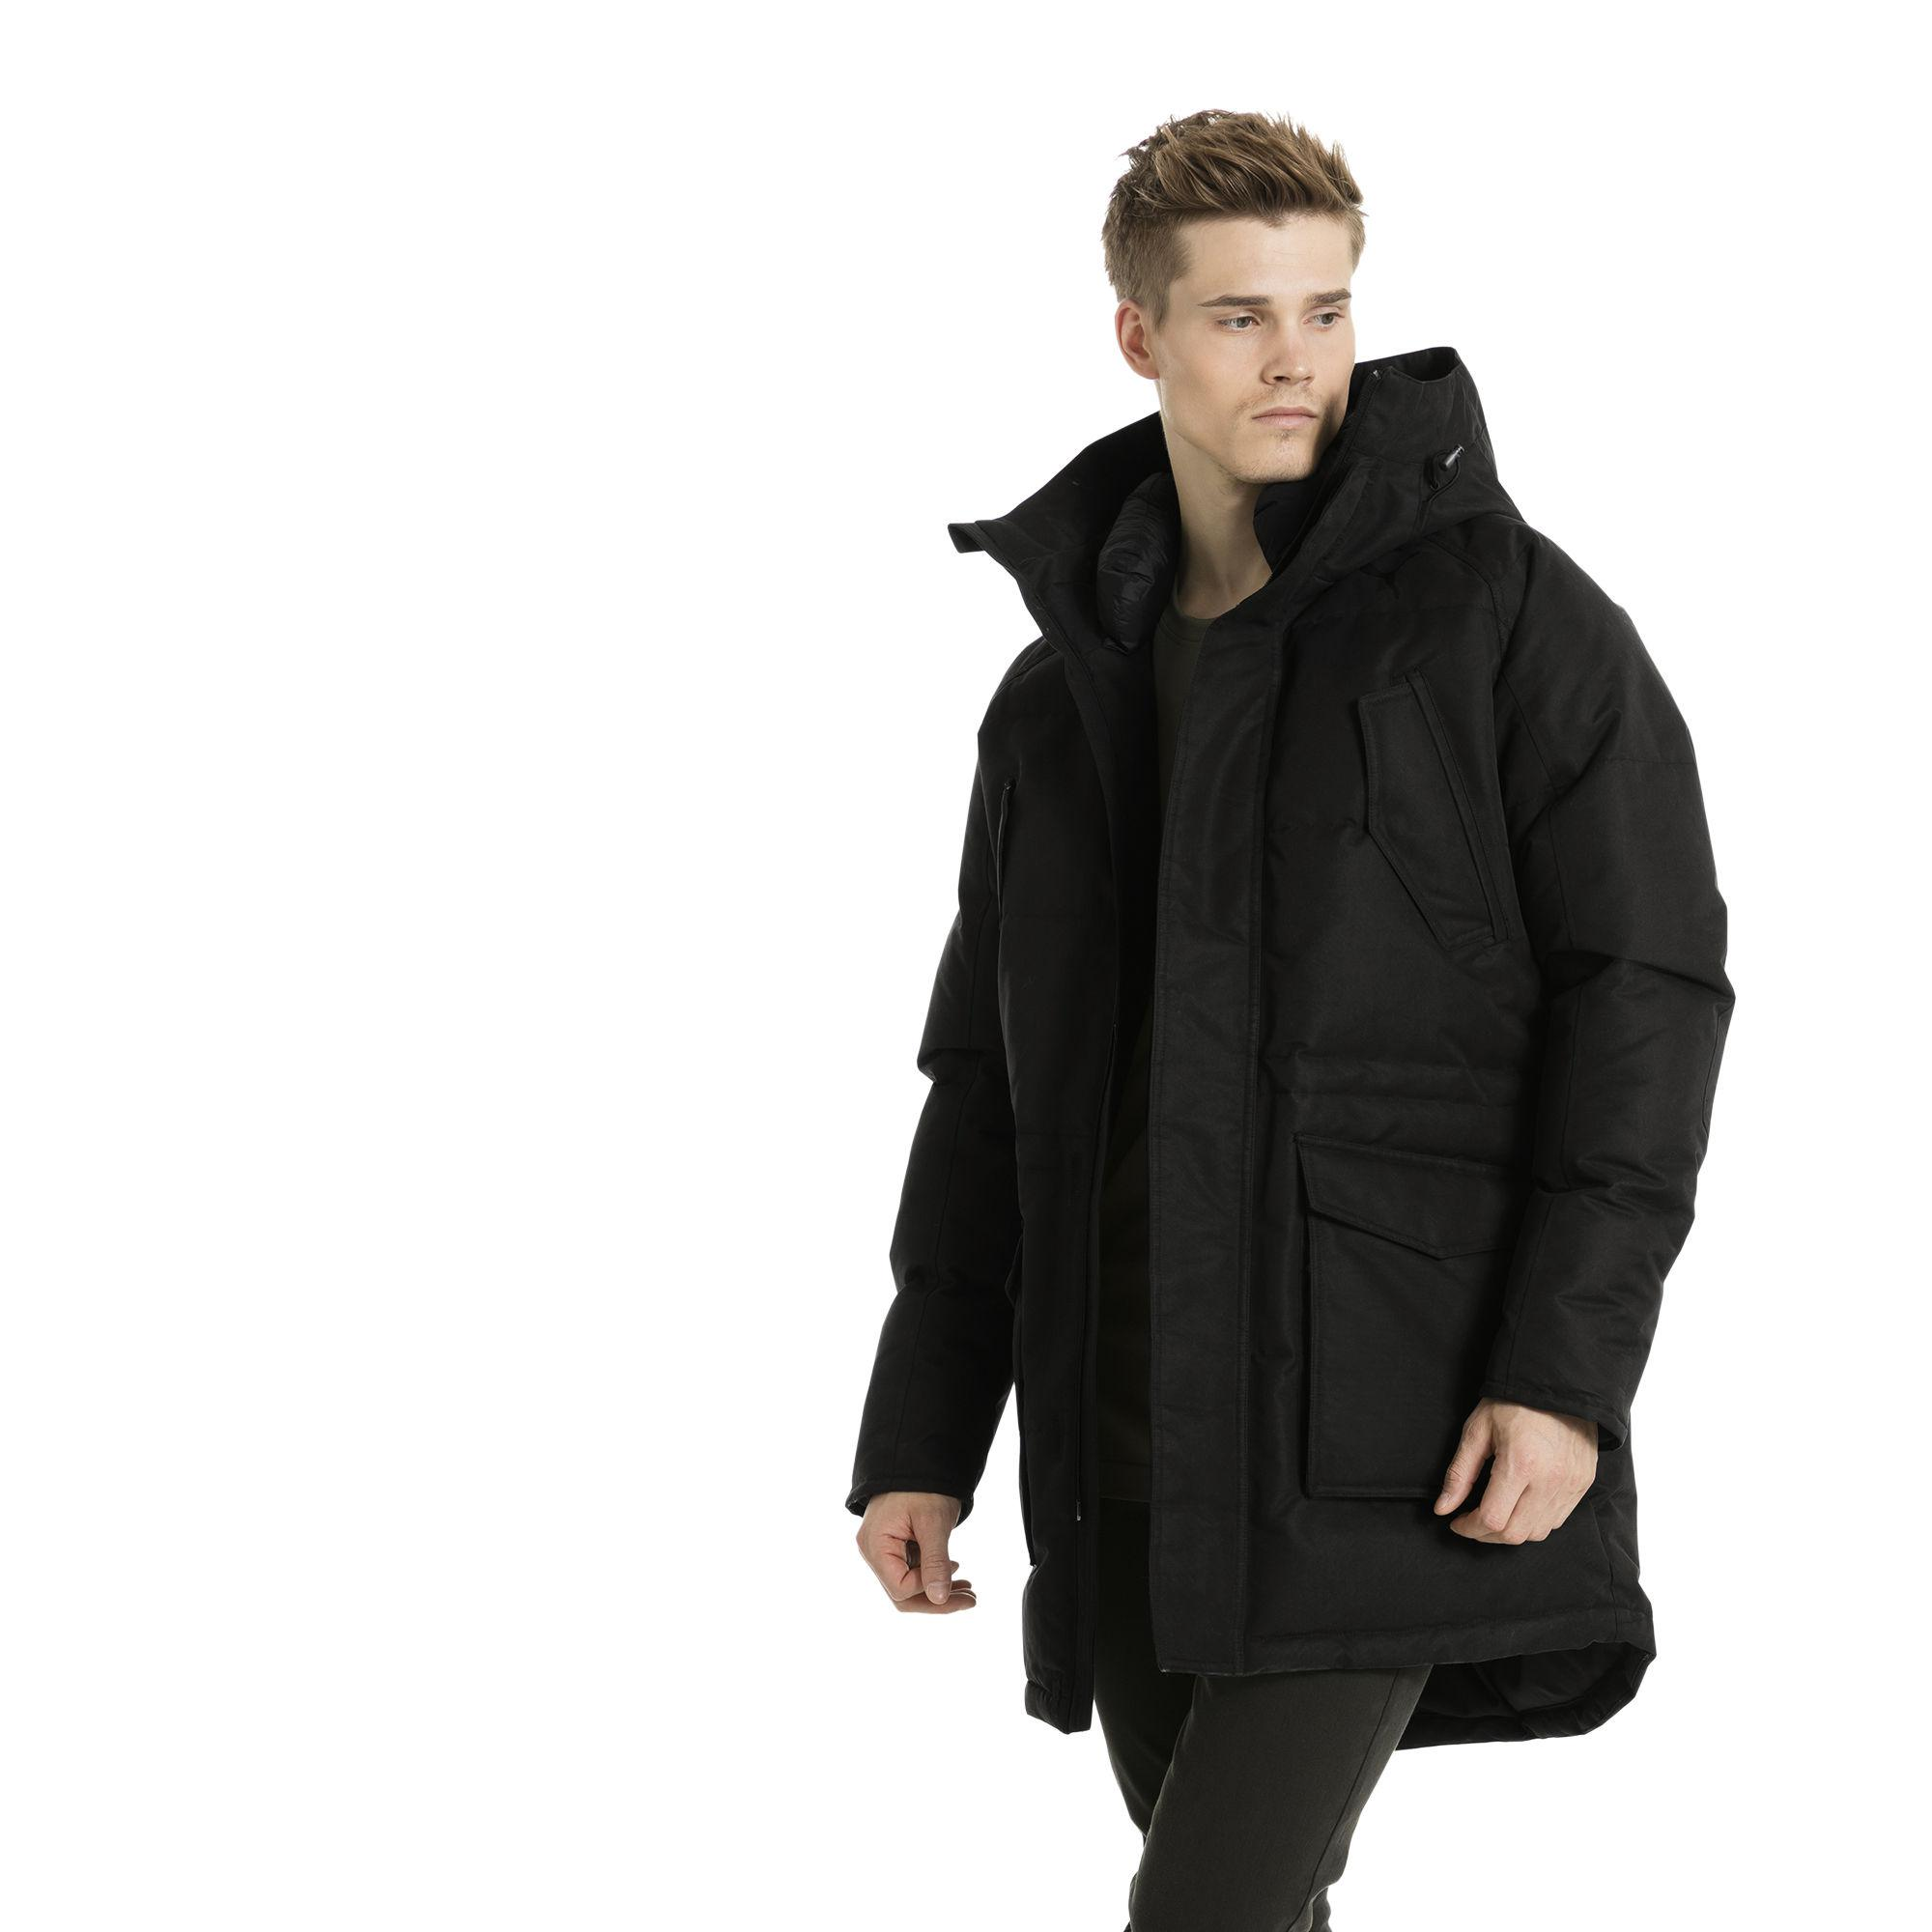 a7be00f0224c Lyst - PUMA Oversize Down Jacket in Black for Men